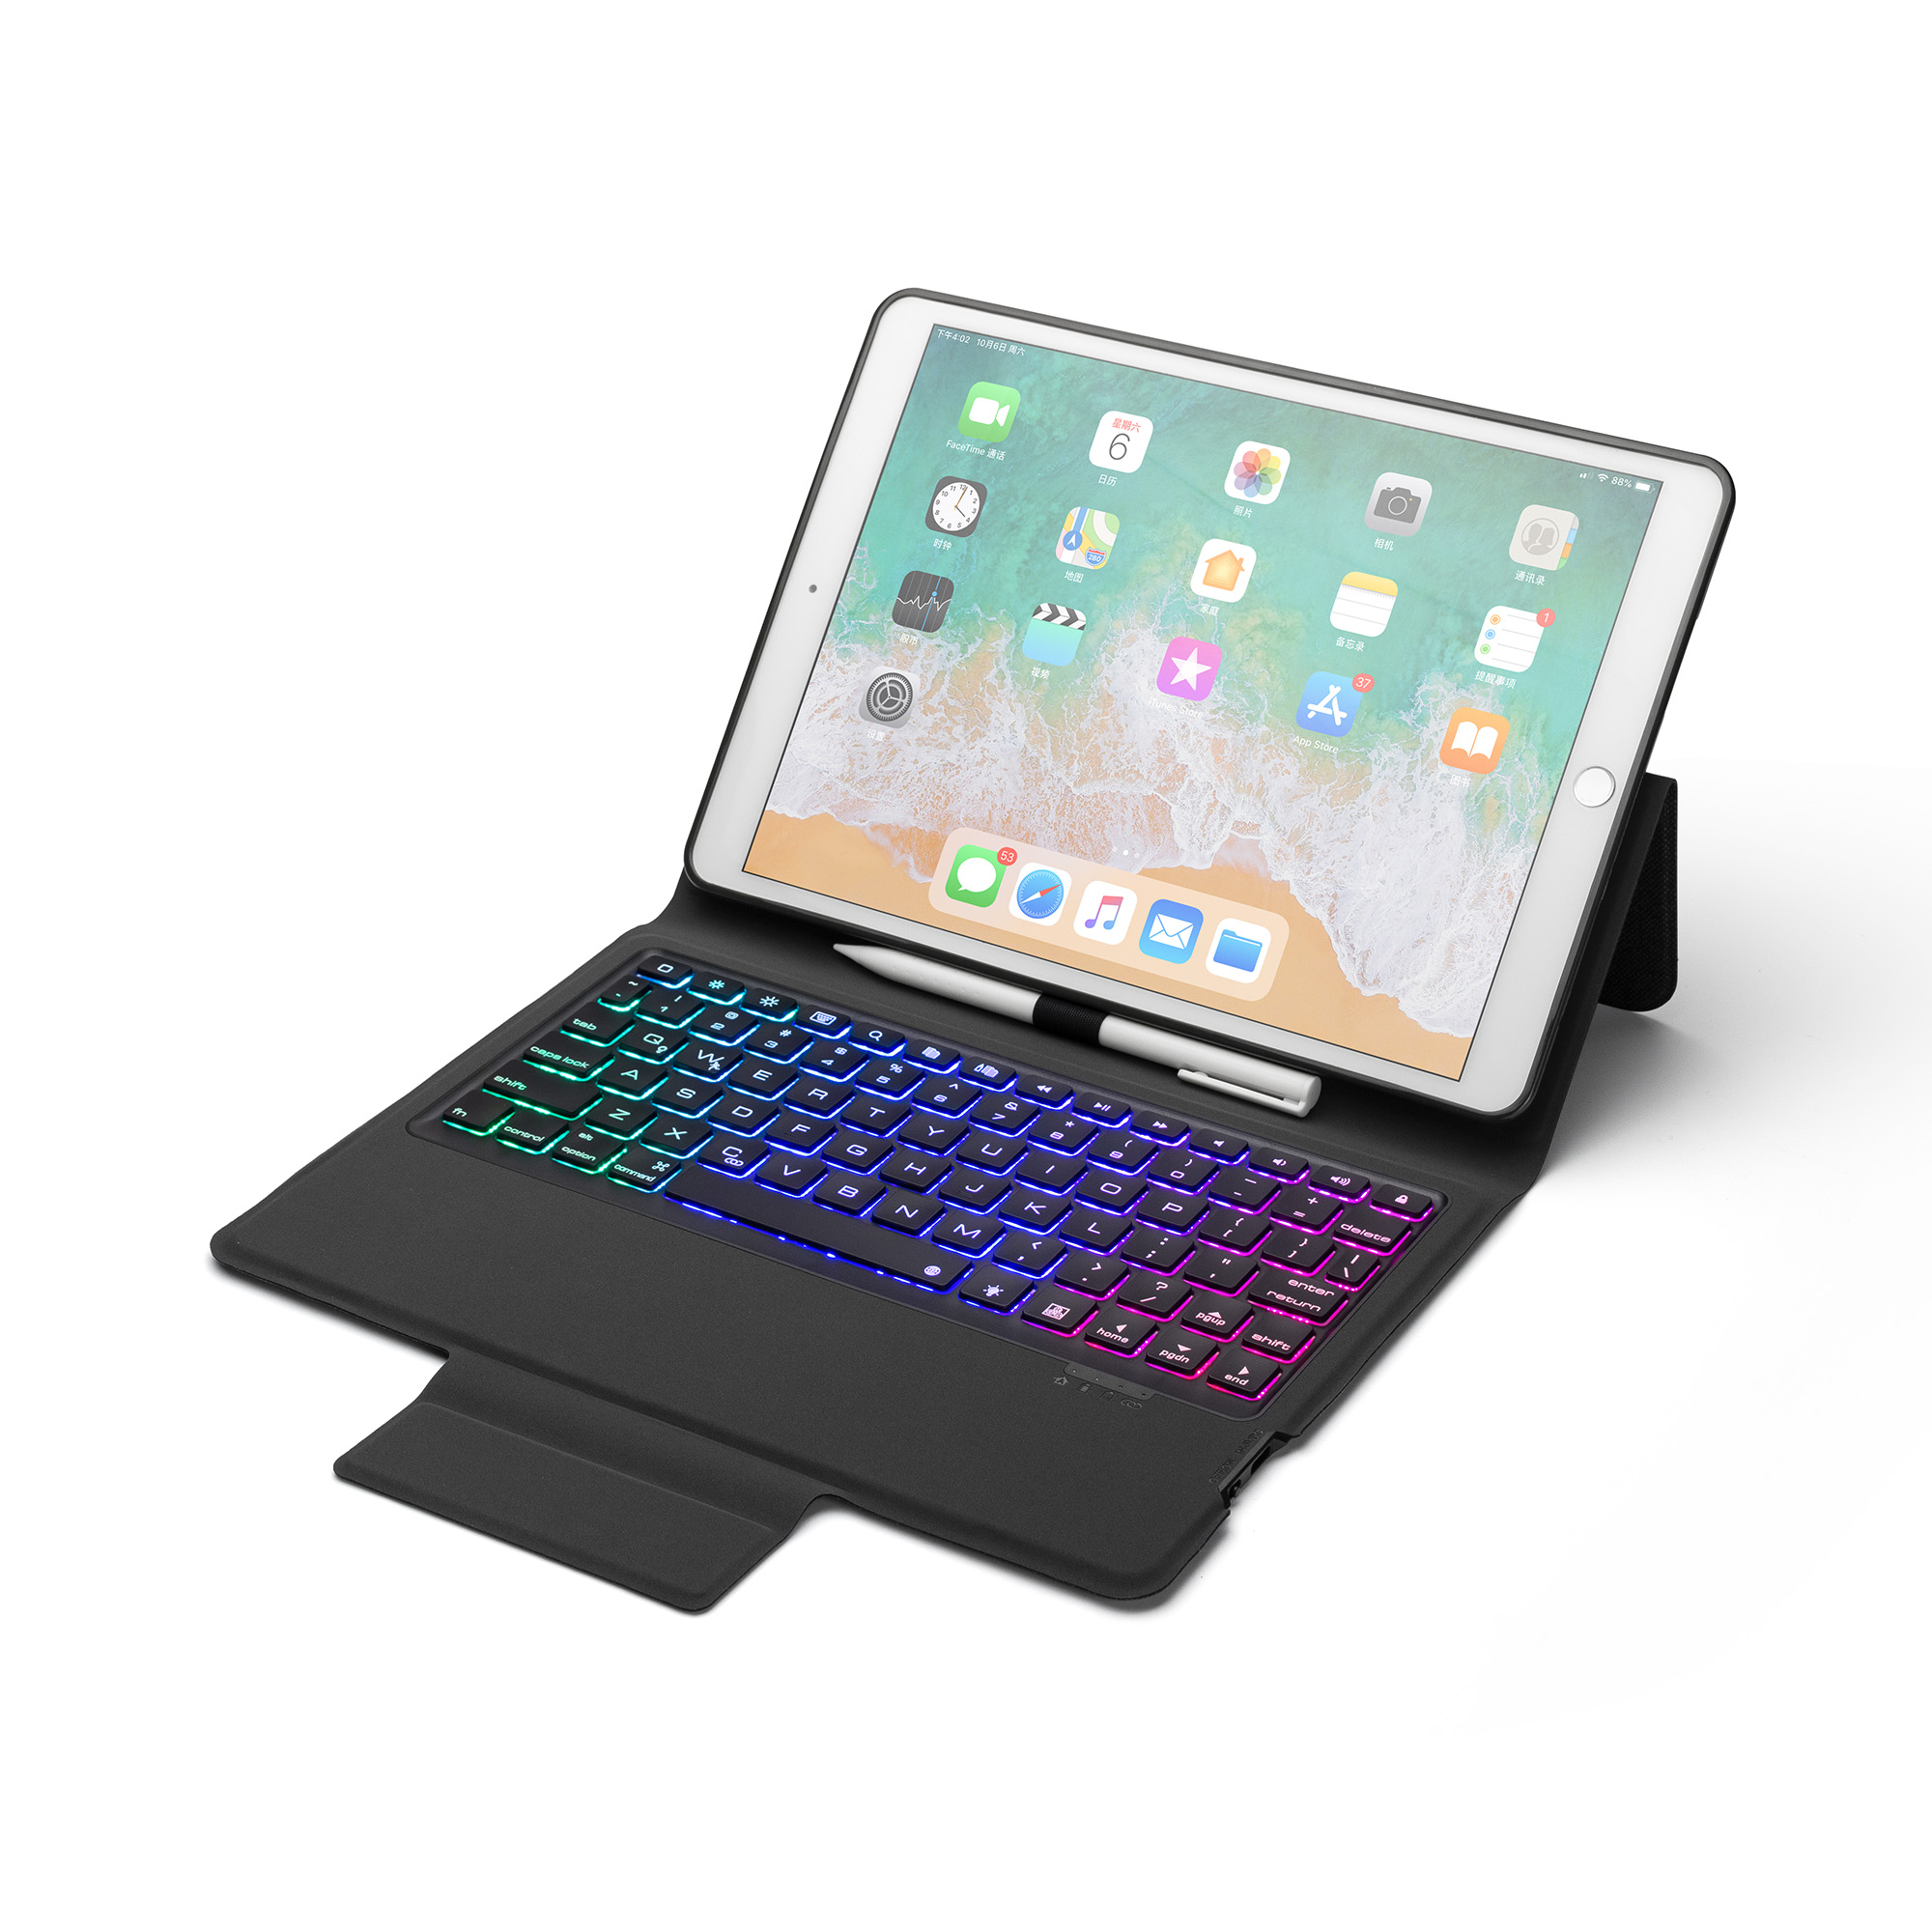 Wireless Bluetooth Keyboard Tablet Cases For IPad Pro 10.2 2019 Leather Cases With LED Backlight Cover For Apple IPad Pro 10.2